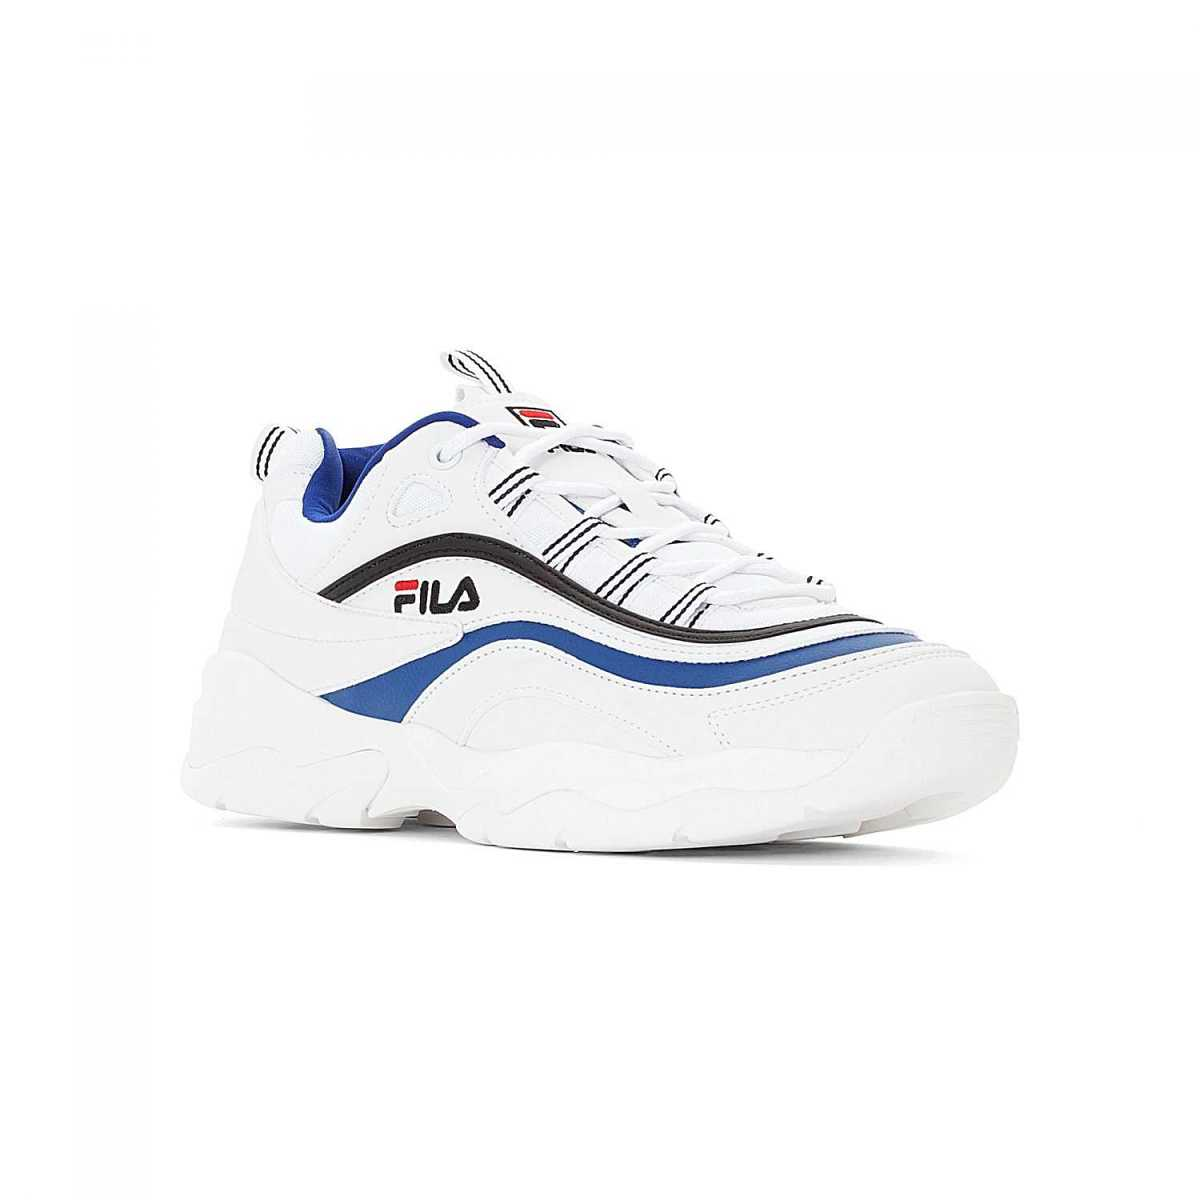 FILA Ray Low Men white electric-blue in Blue for Men - GOOFASH